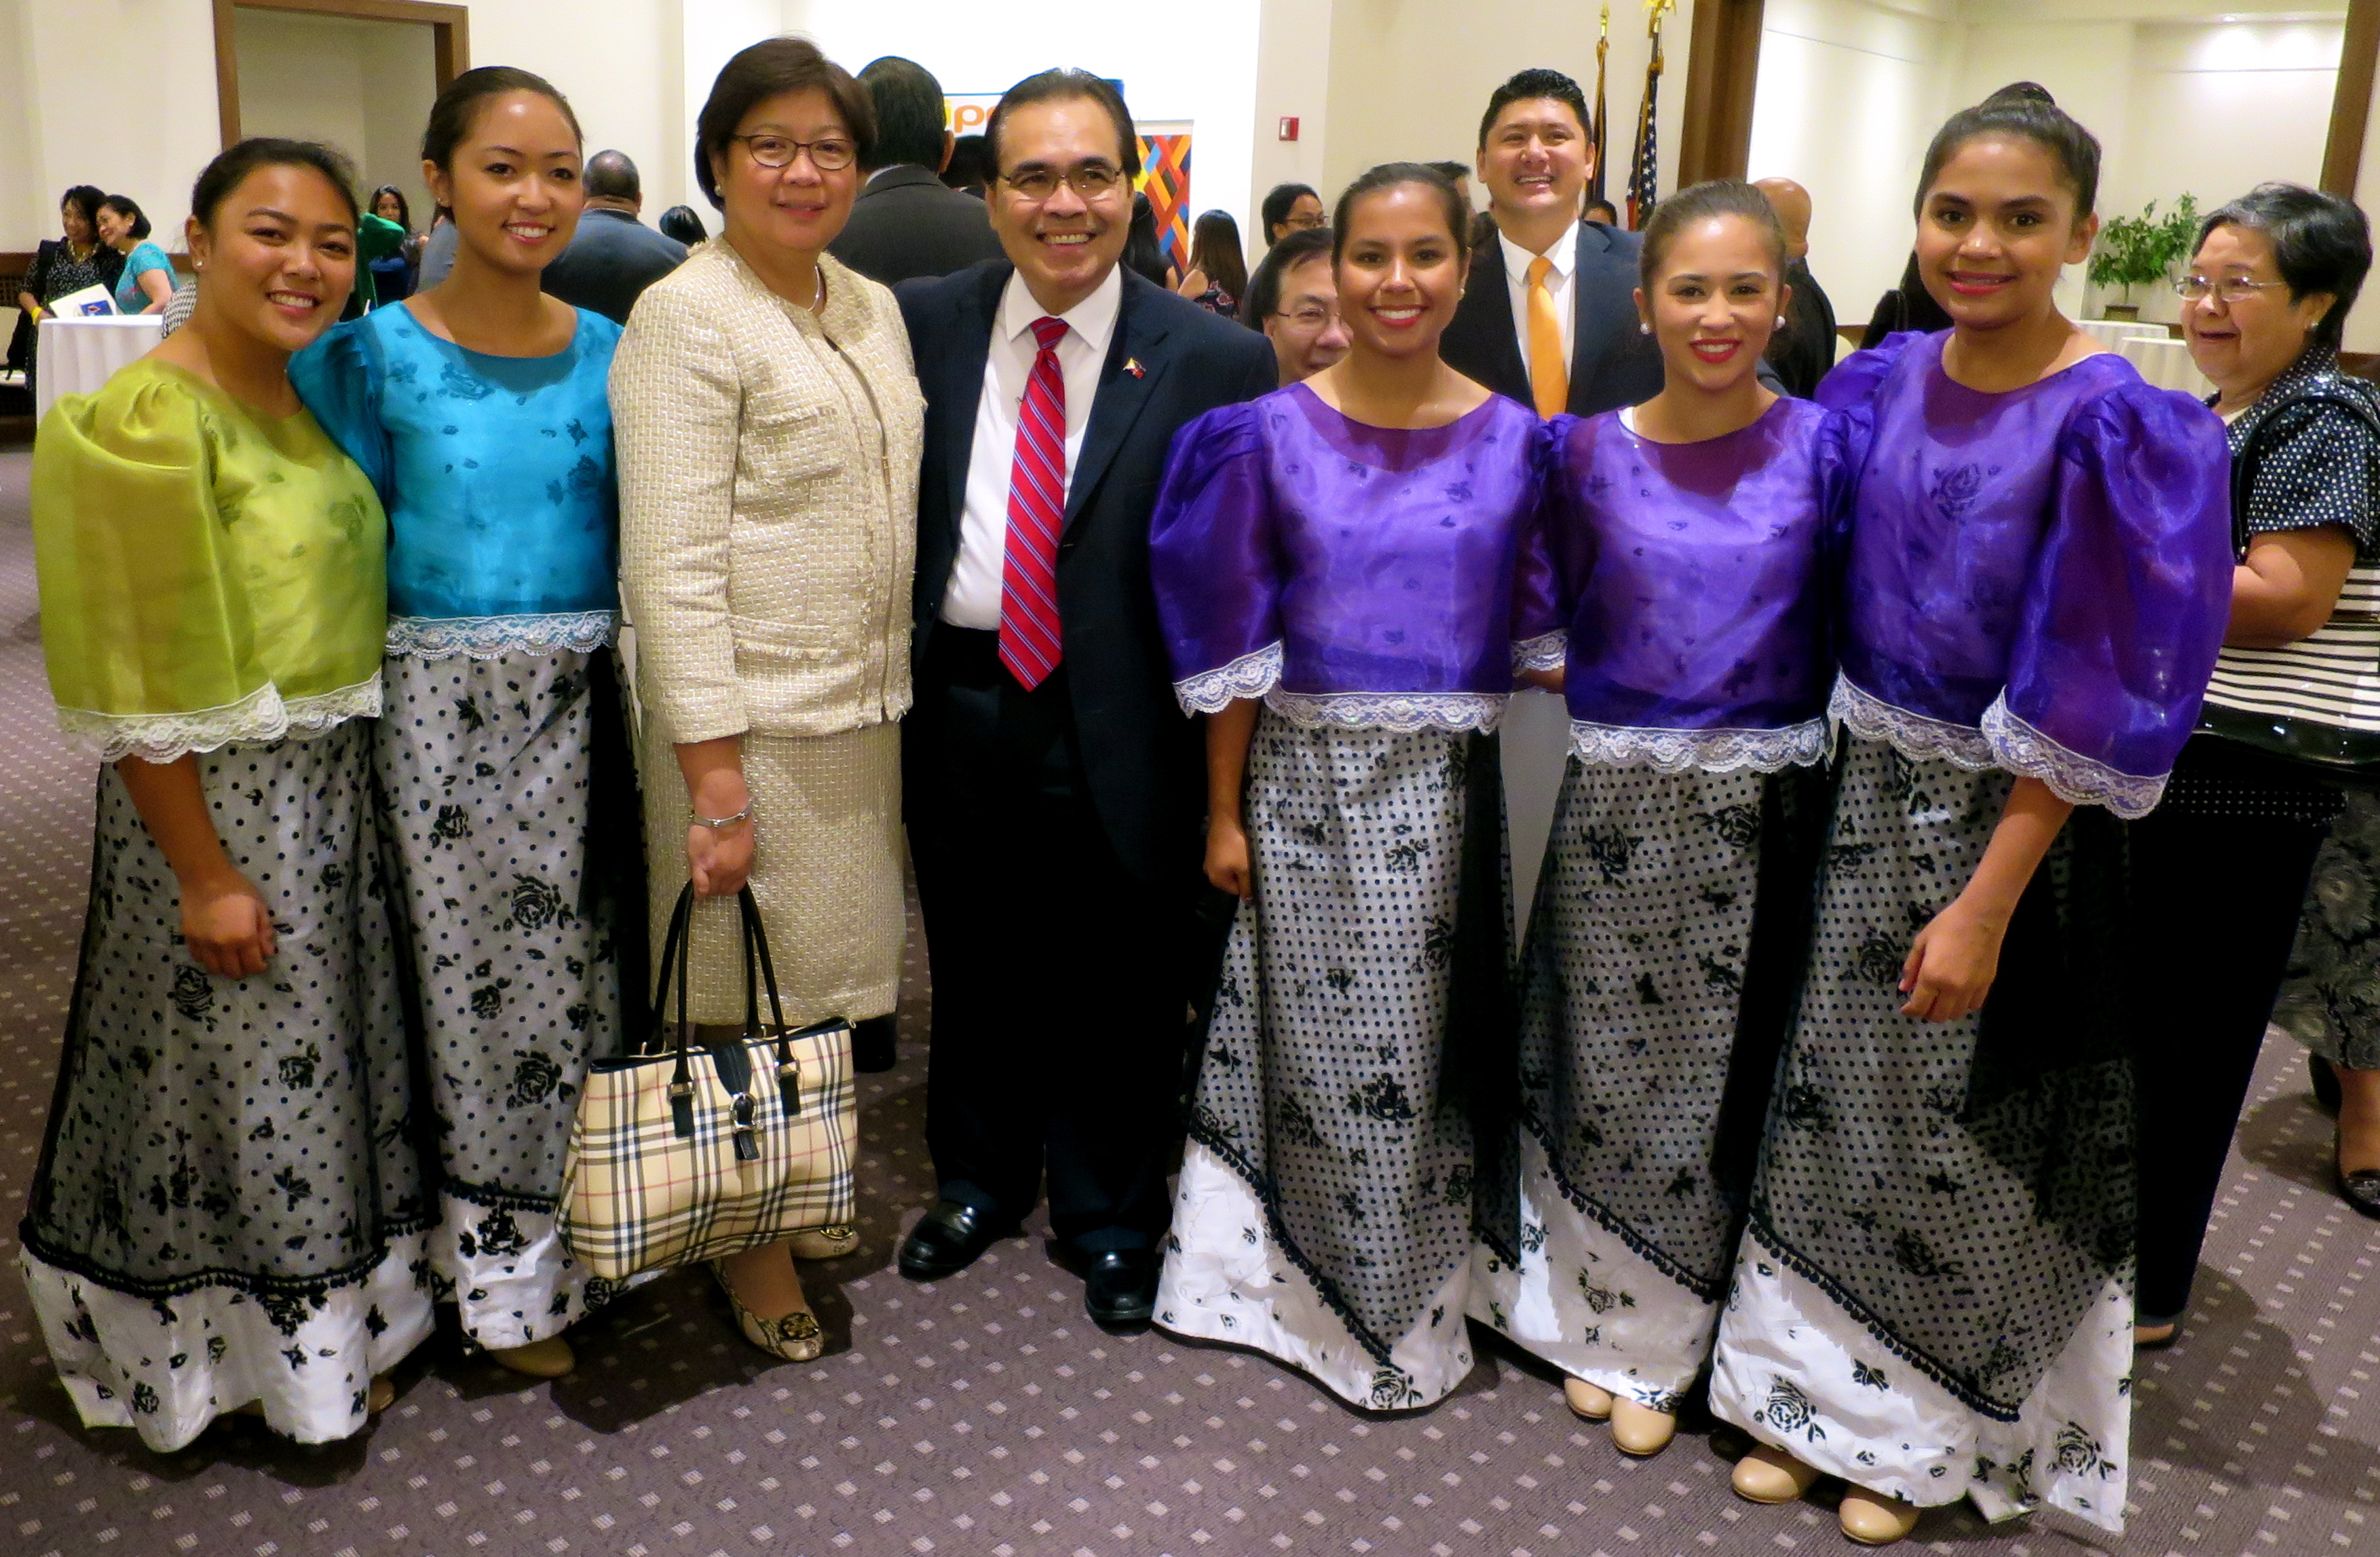 w/ NYC Consul General & Mrs. Mario DeLeon